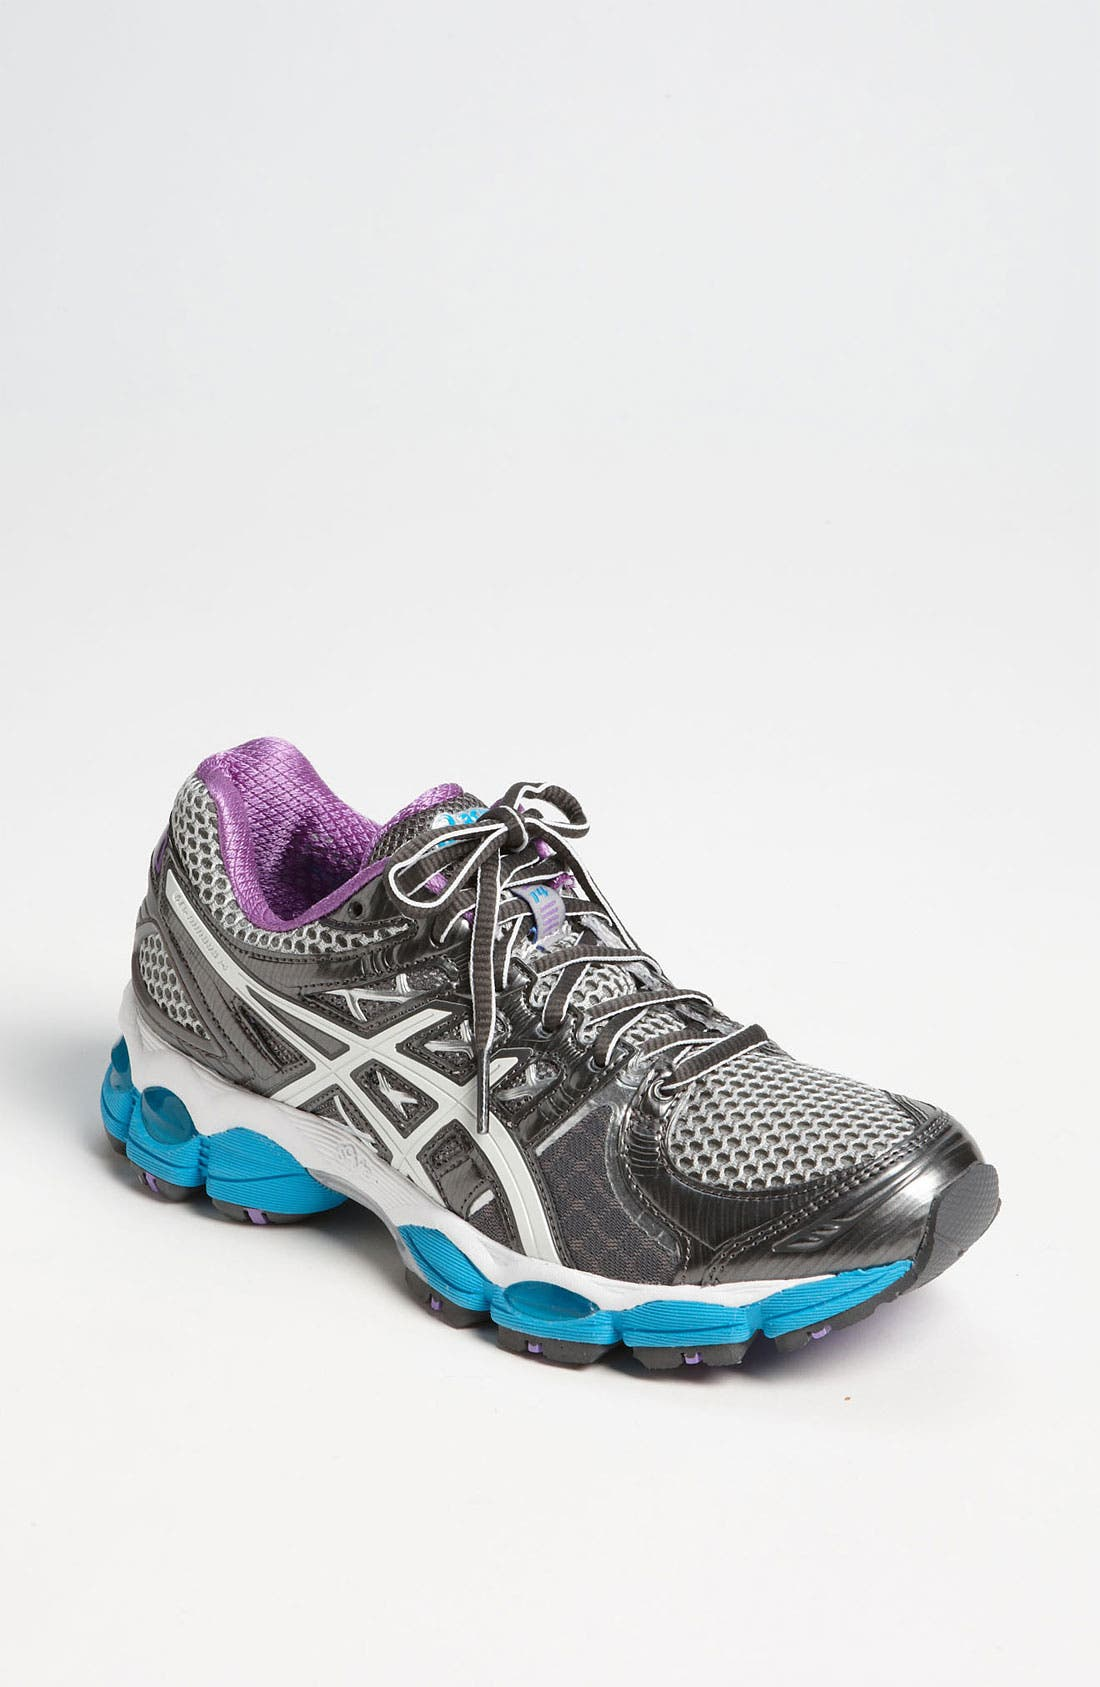 Alternate Image 1 Selected - ASICS® 'GEL-Nimbus 14' Running Shoe (Women)(Retail Price: $139.95)